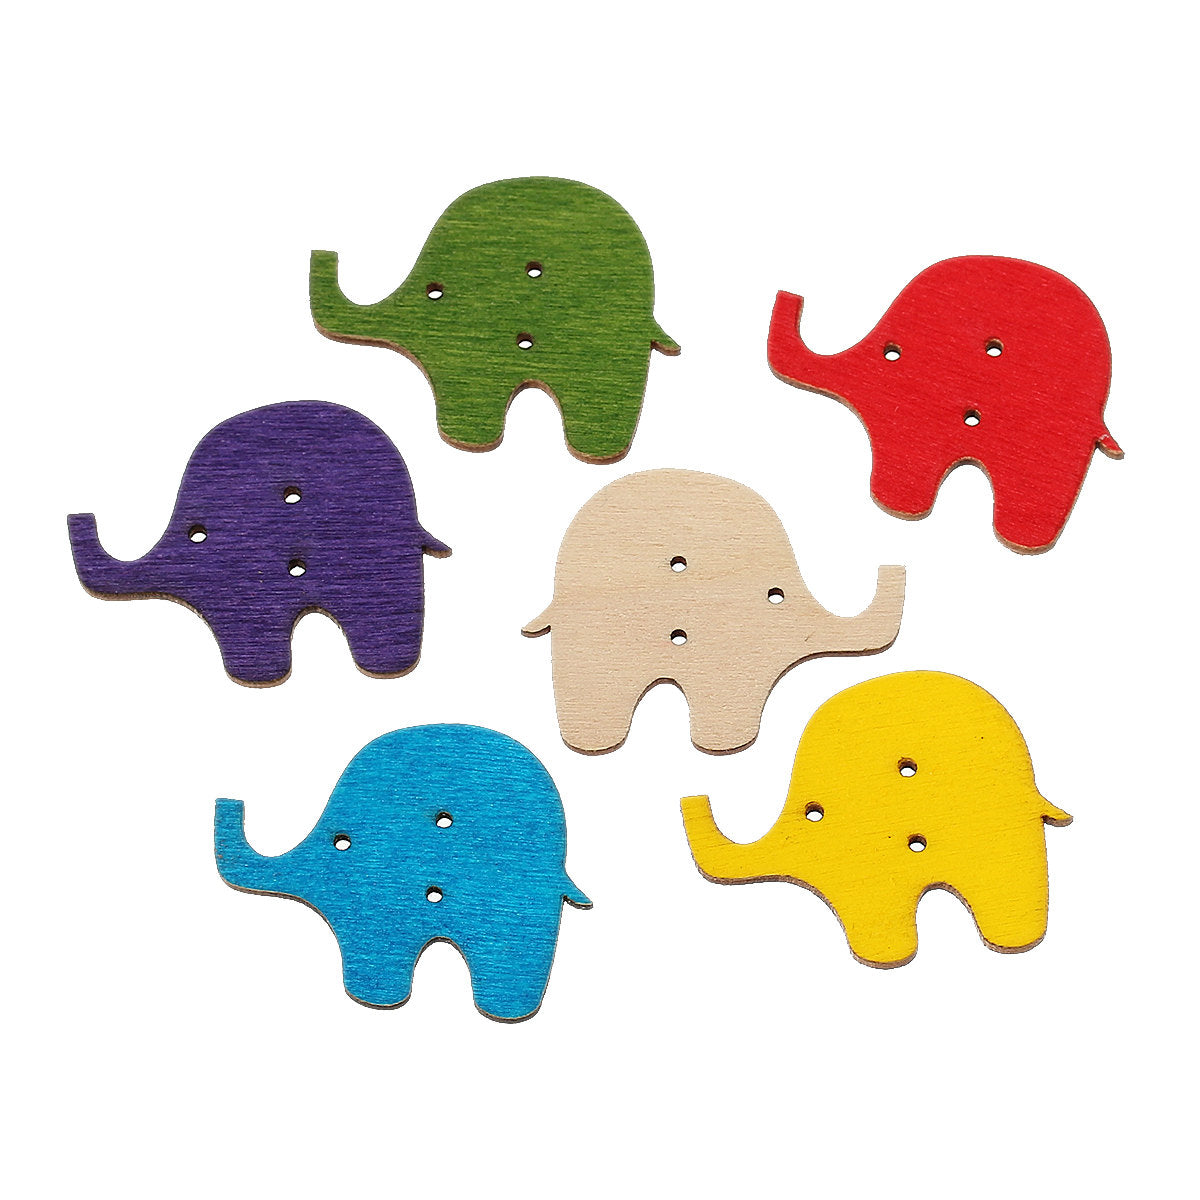 "Elephant Wooden Buttons - 3.4cm x 2.7cm(1 3/8"" x 1 1/8"") - 2 Hole"